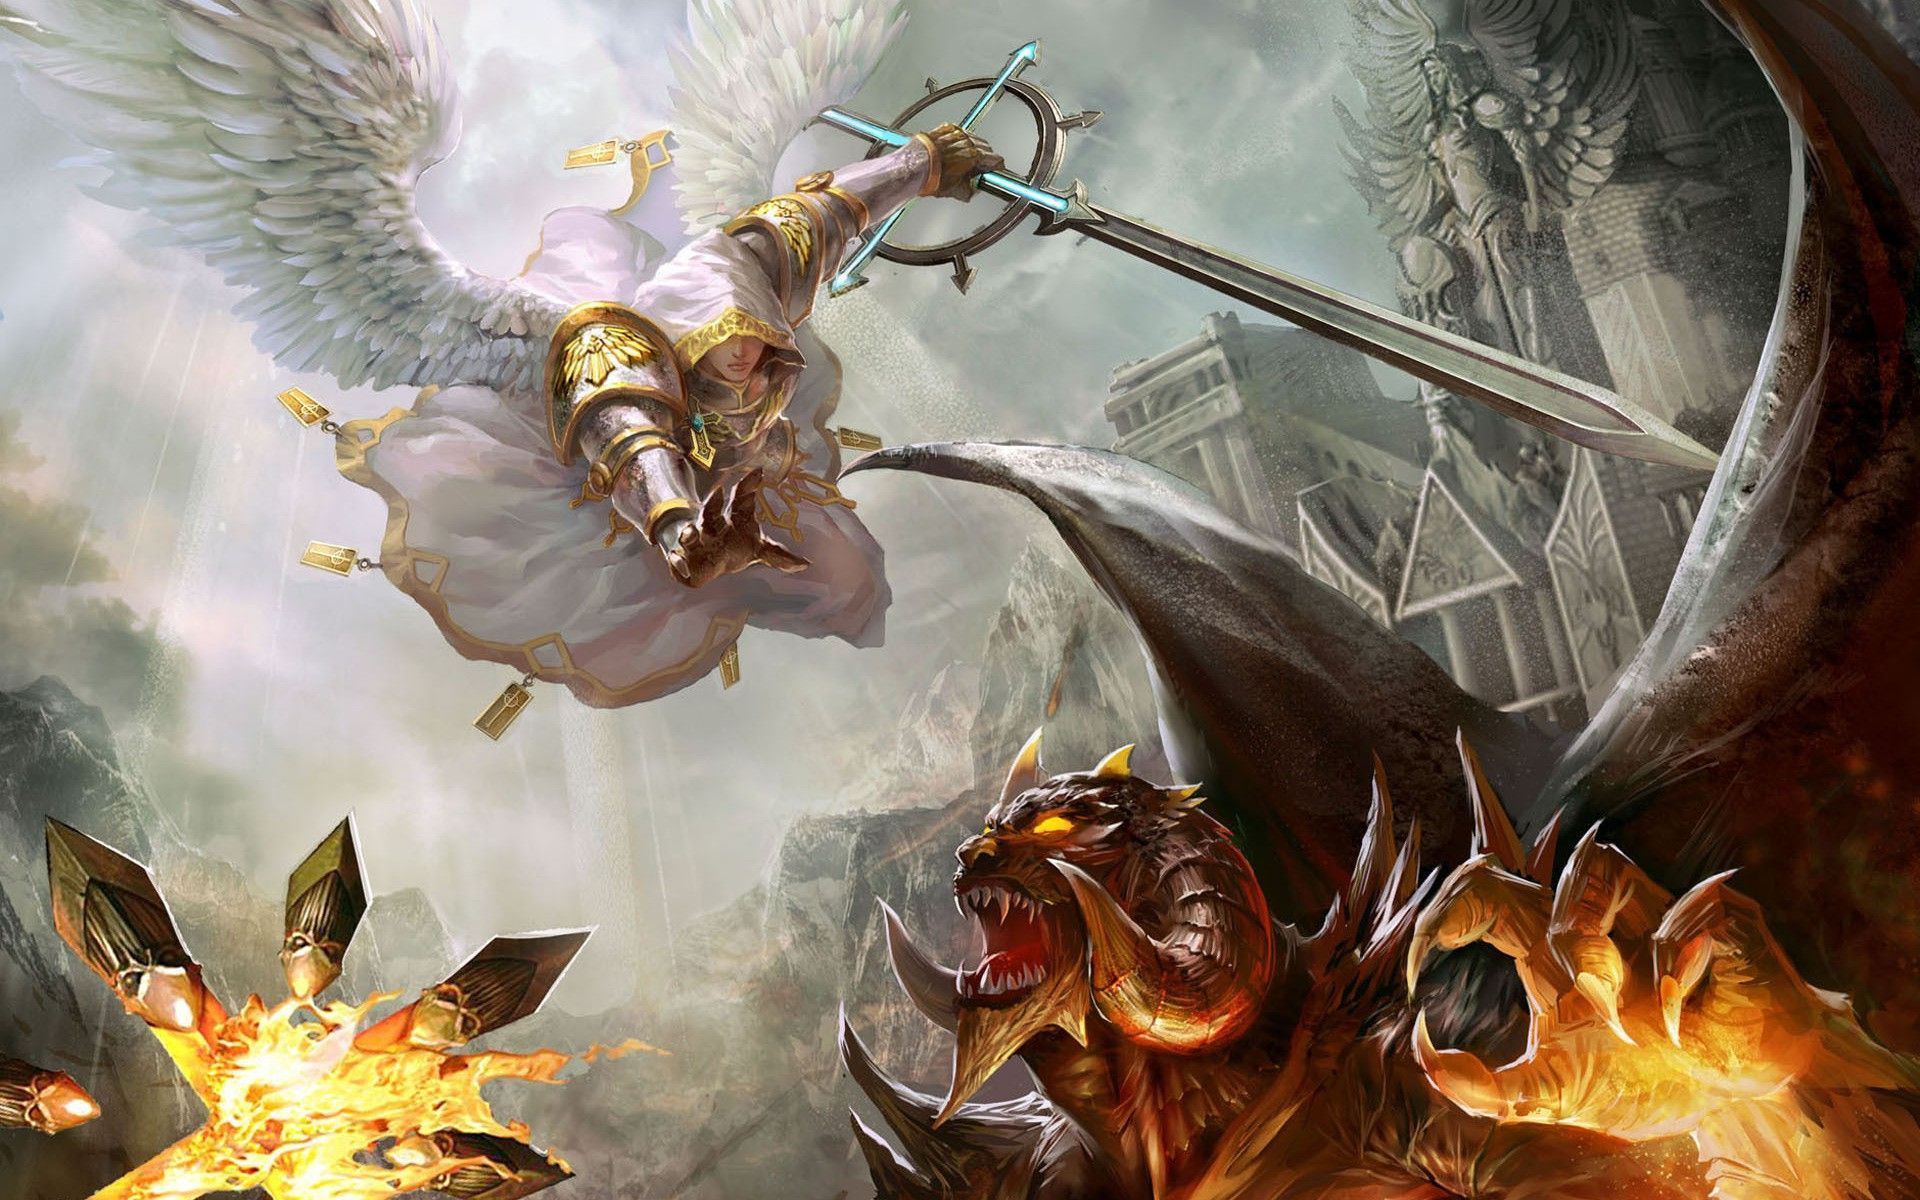 archangel-heroes-of-might-and-magic-vi-game-hd-wallpaper-1920x1200-8307